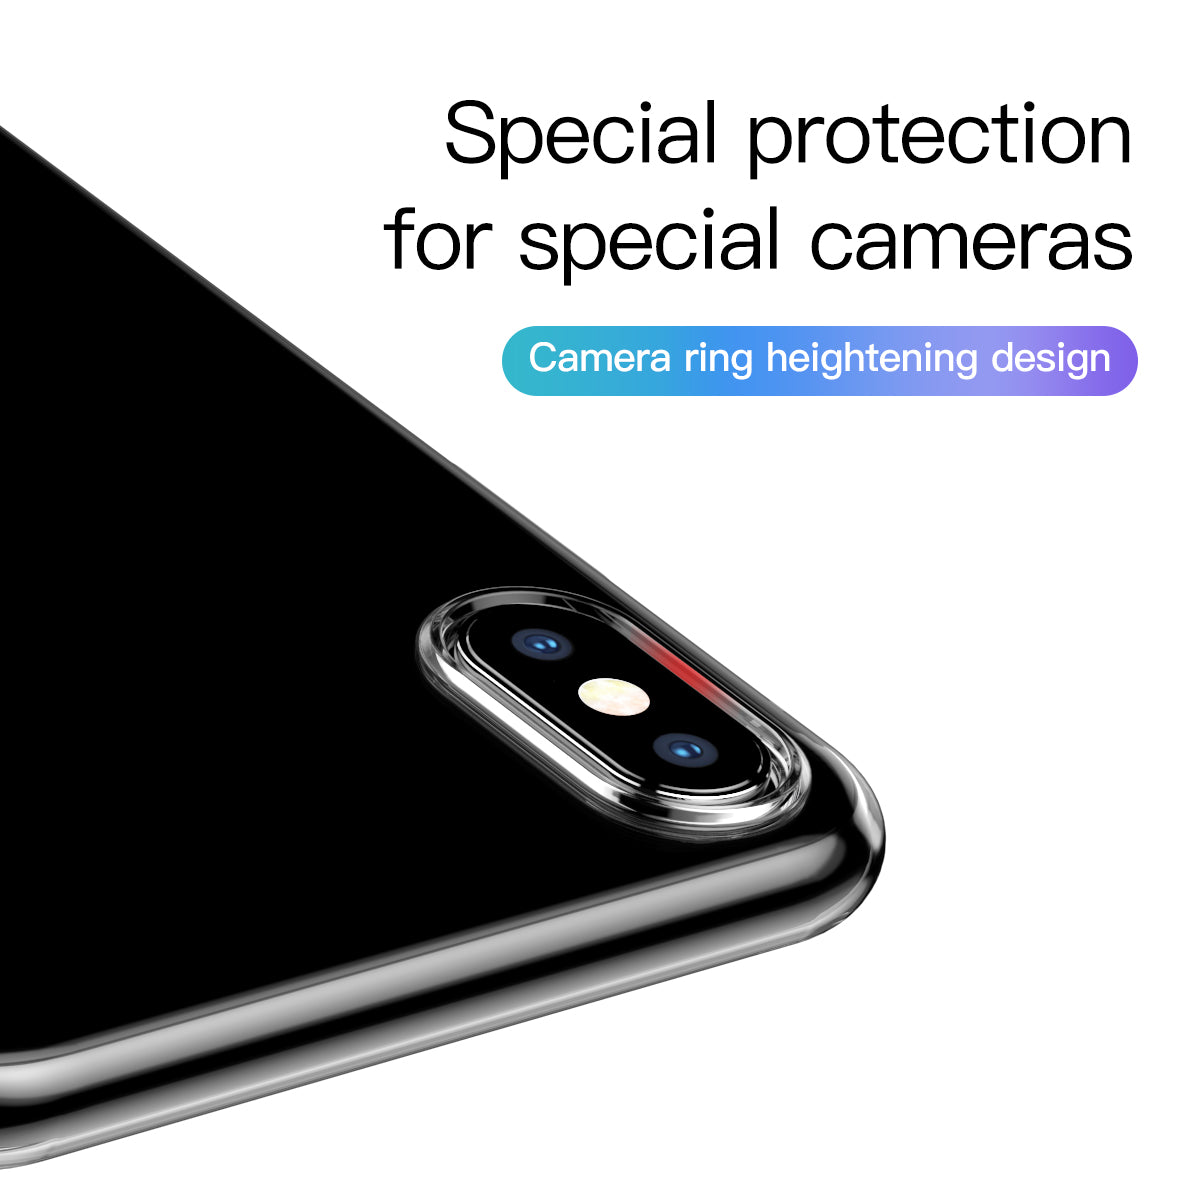 iPhone-XS-Baseus-Simple-Series-Transparent-Dust-Free-Plug-Camera-Protection_S07WI2EKL4IT.jpg